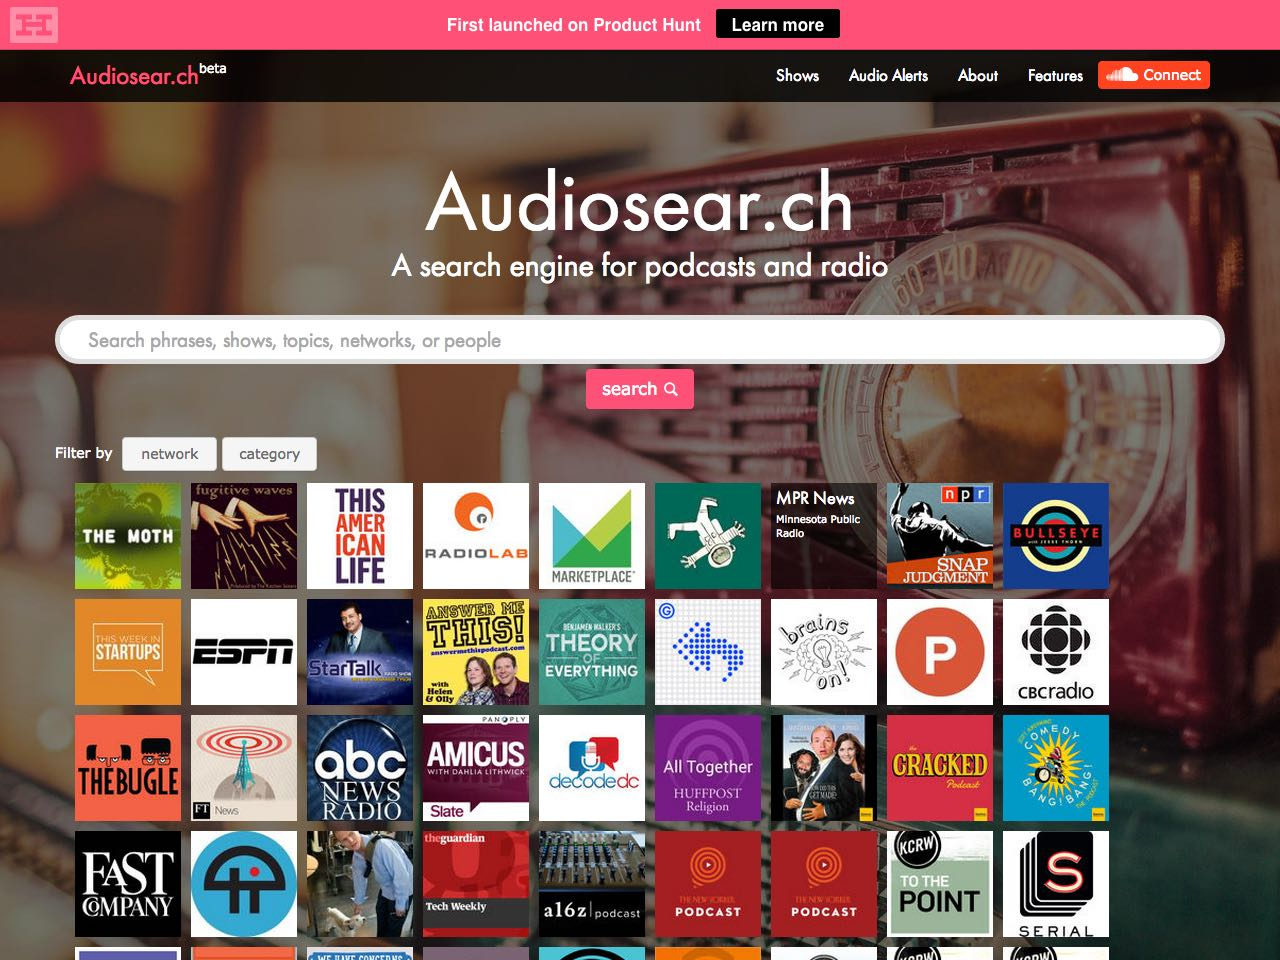 http://prodct.in/images/2015/03/13-www.audiosear.ch.jpg